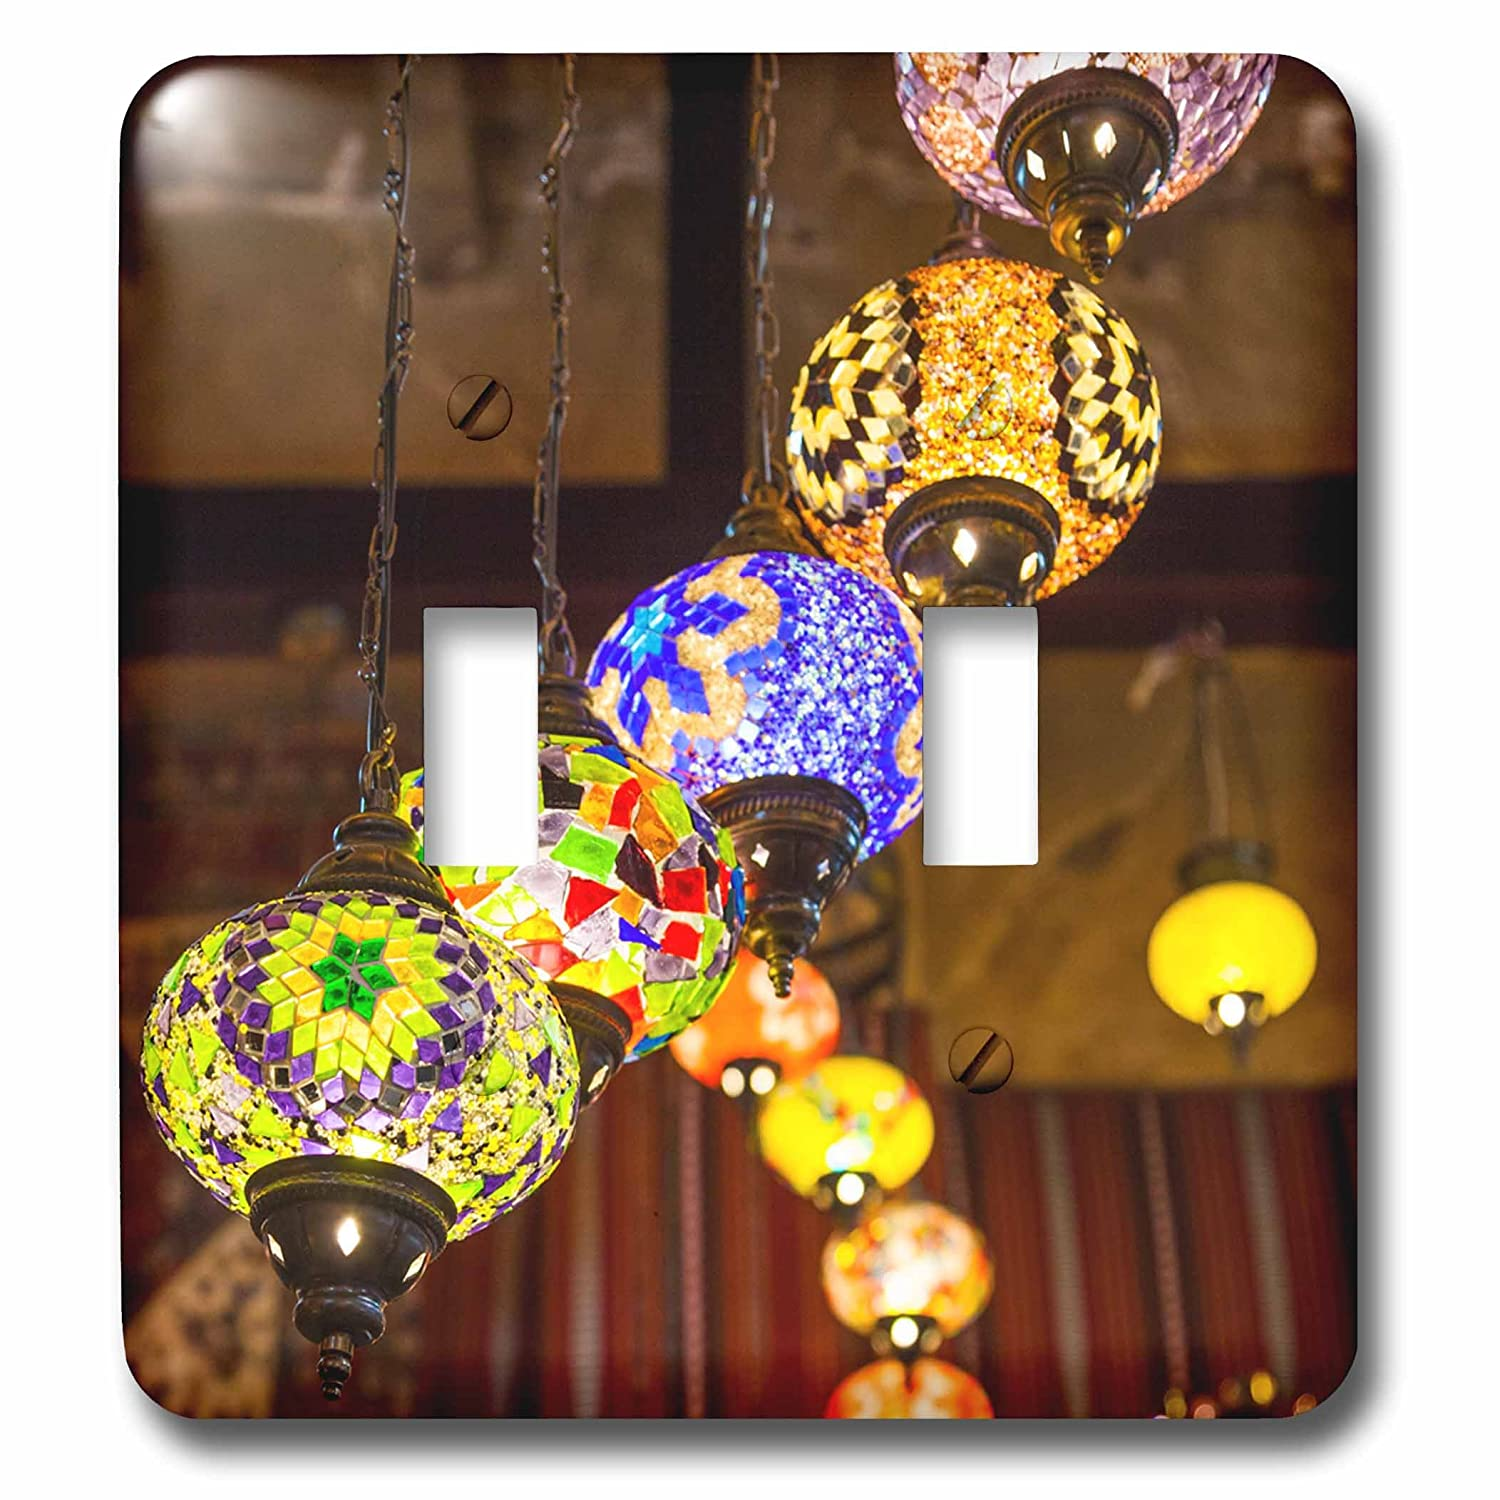 3drose lsp 257253 2 qatar doha souq waqif redeveloped bazaar area traditional lamps toggle switch amazon com